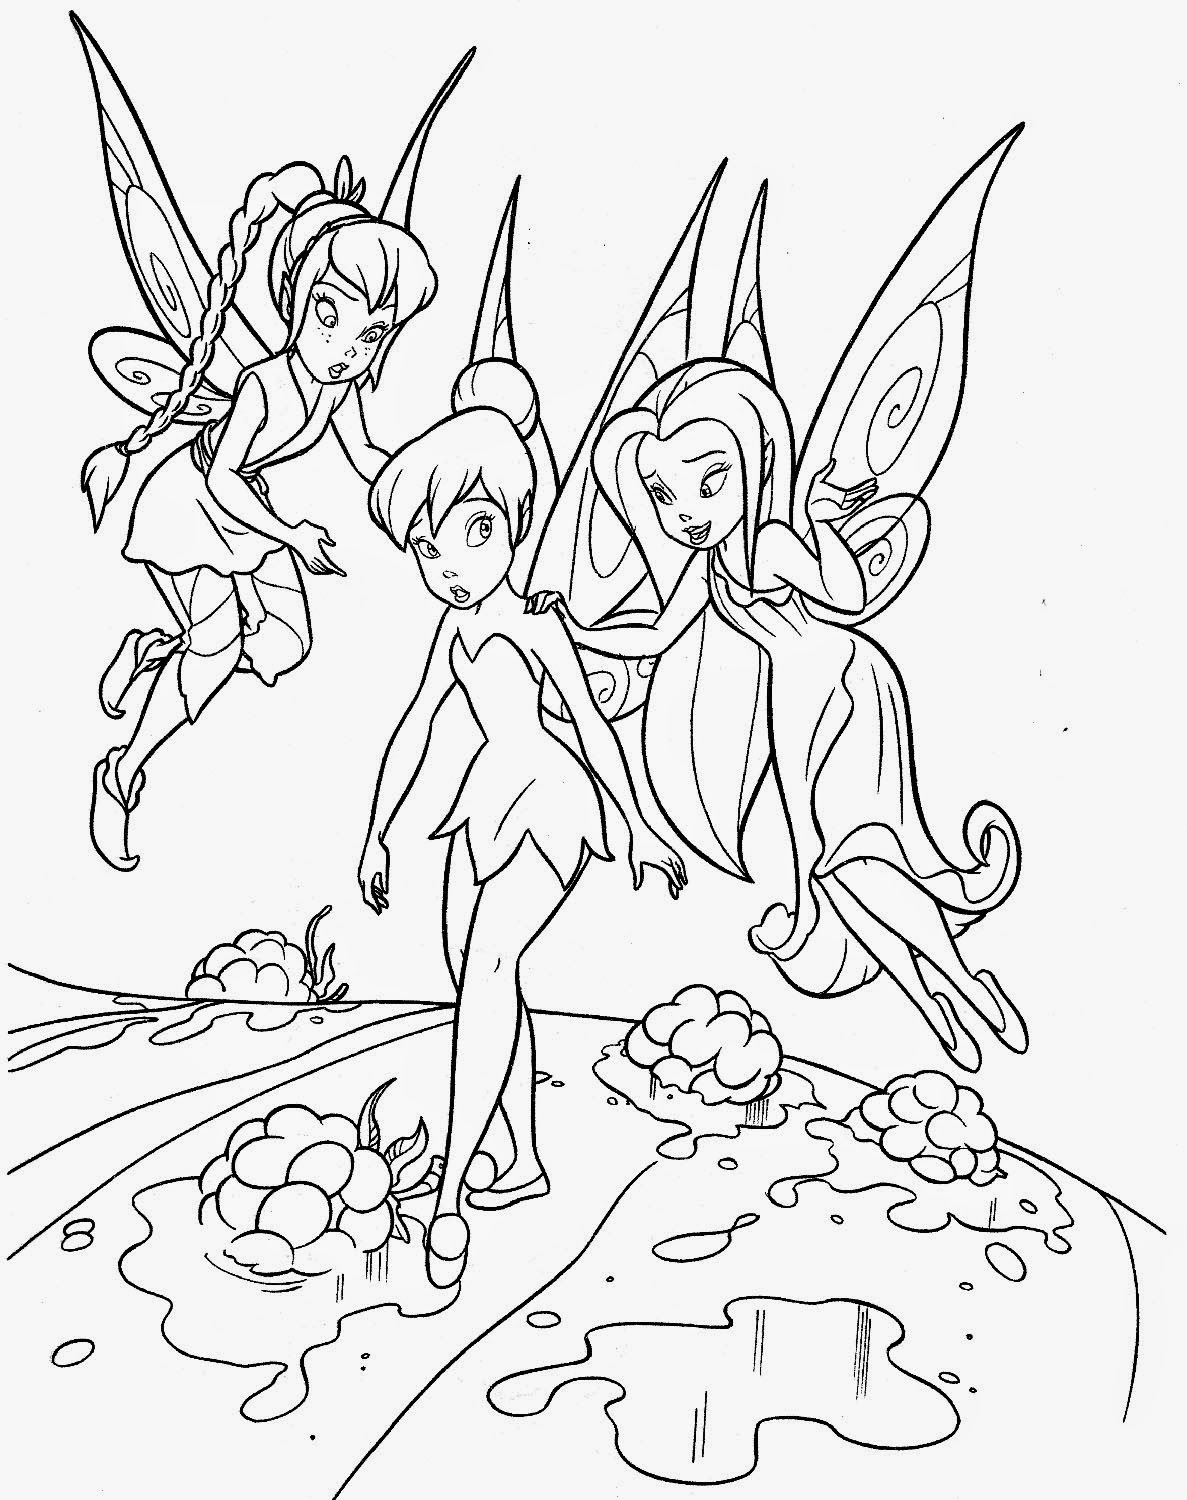 tinkerbell coloring page transmissionpress may 2011 coloring tinkerbell page